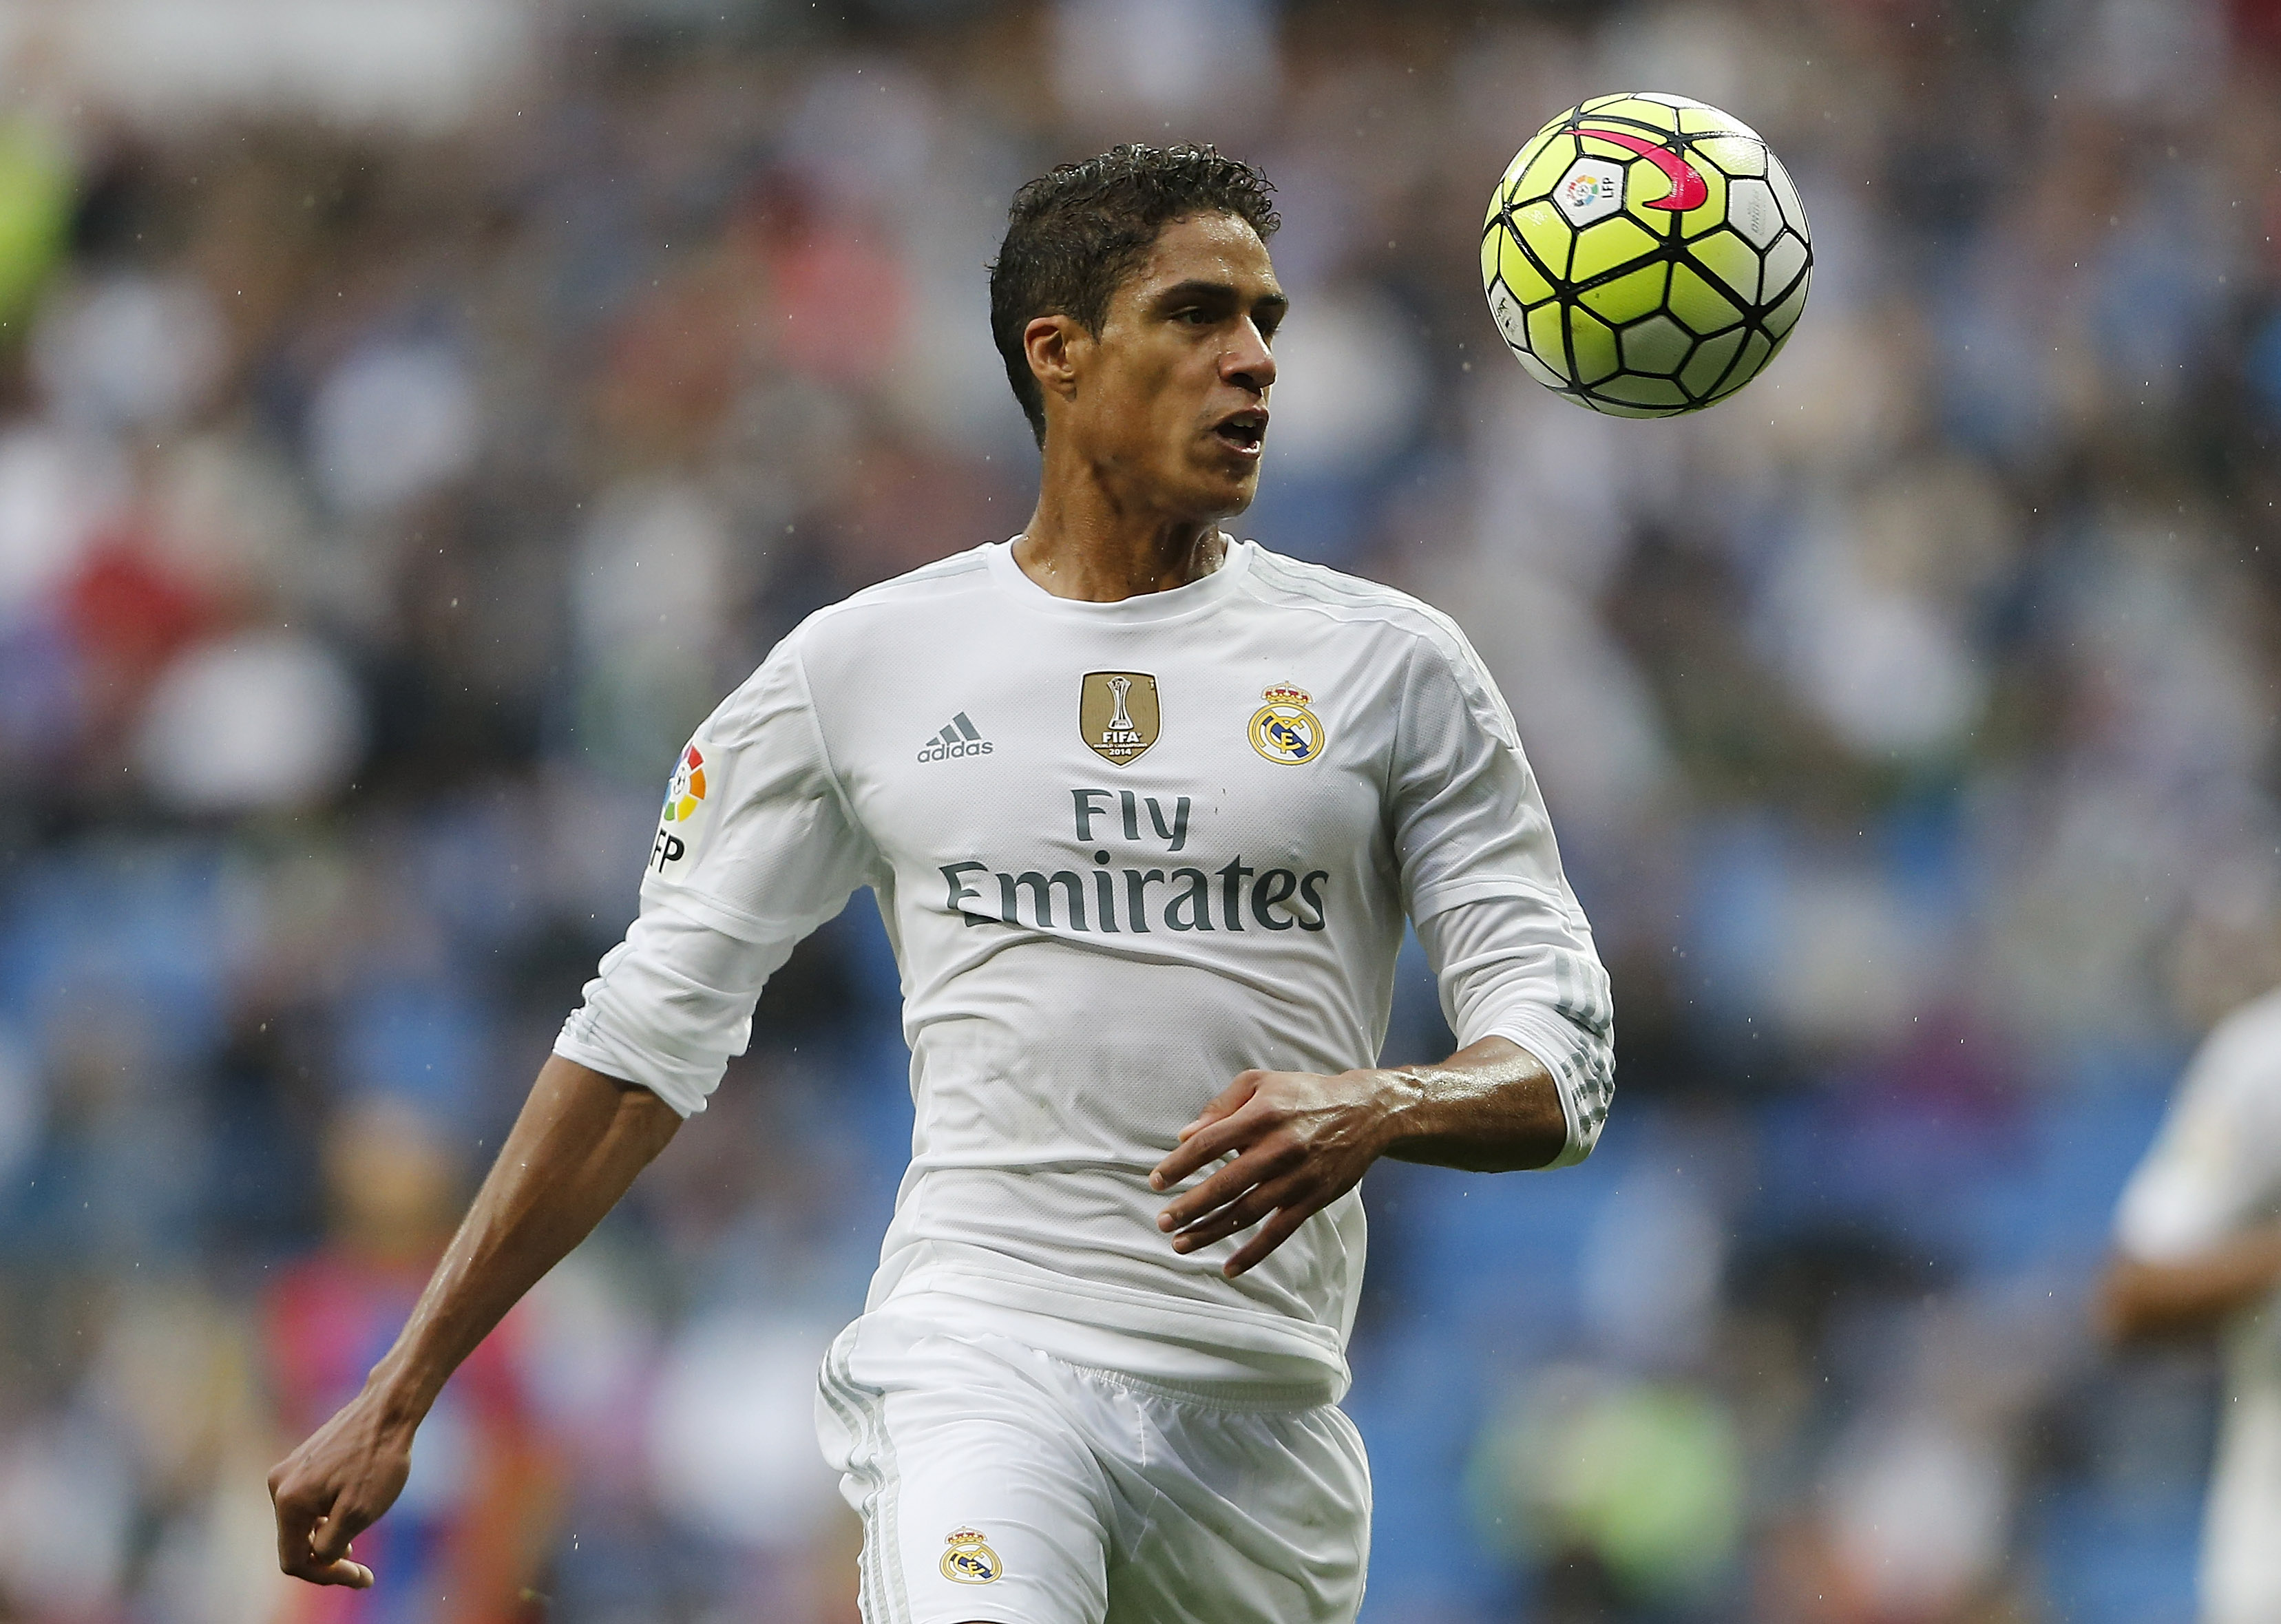 Rumour: Manchester United transfer target Raphael Varane being forced out of Real Madrid